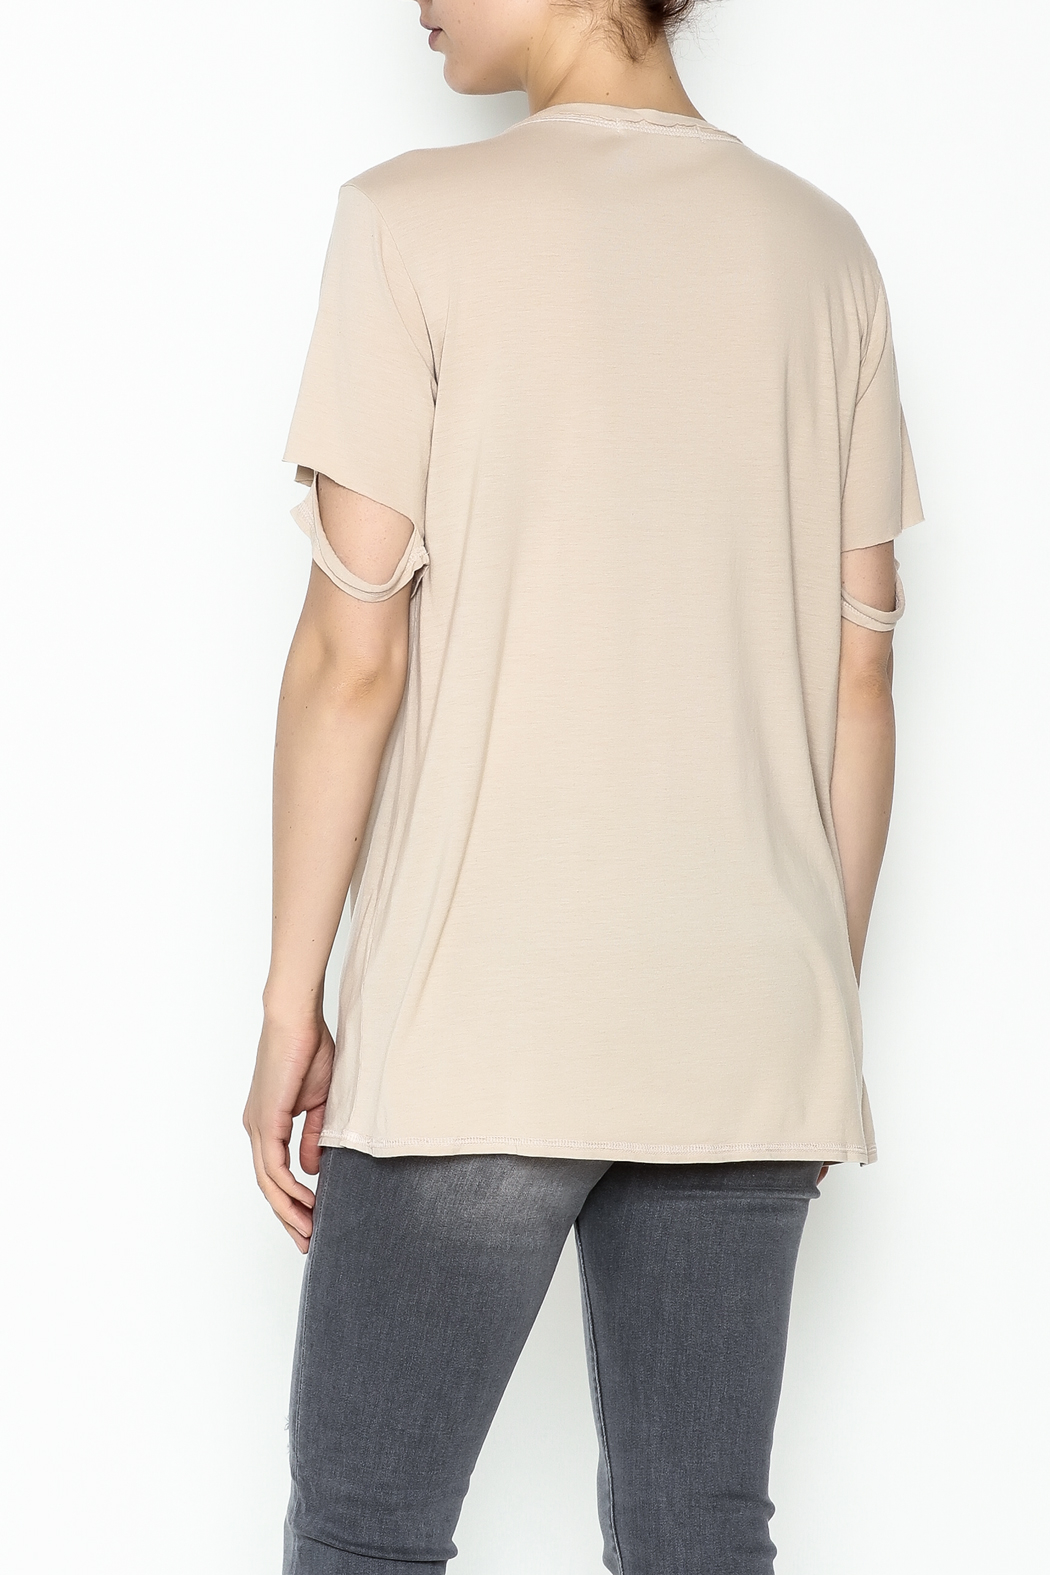 Project Social T Thunder Tee - Back Cropped Image